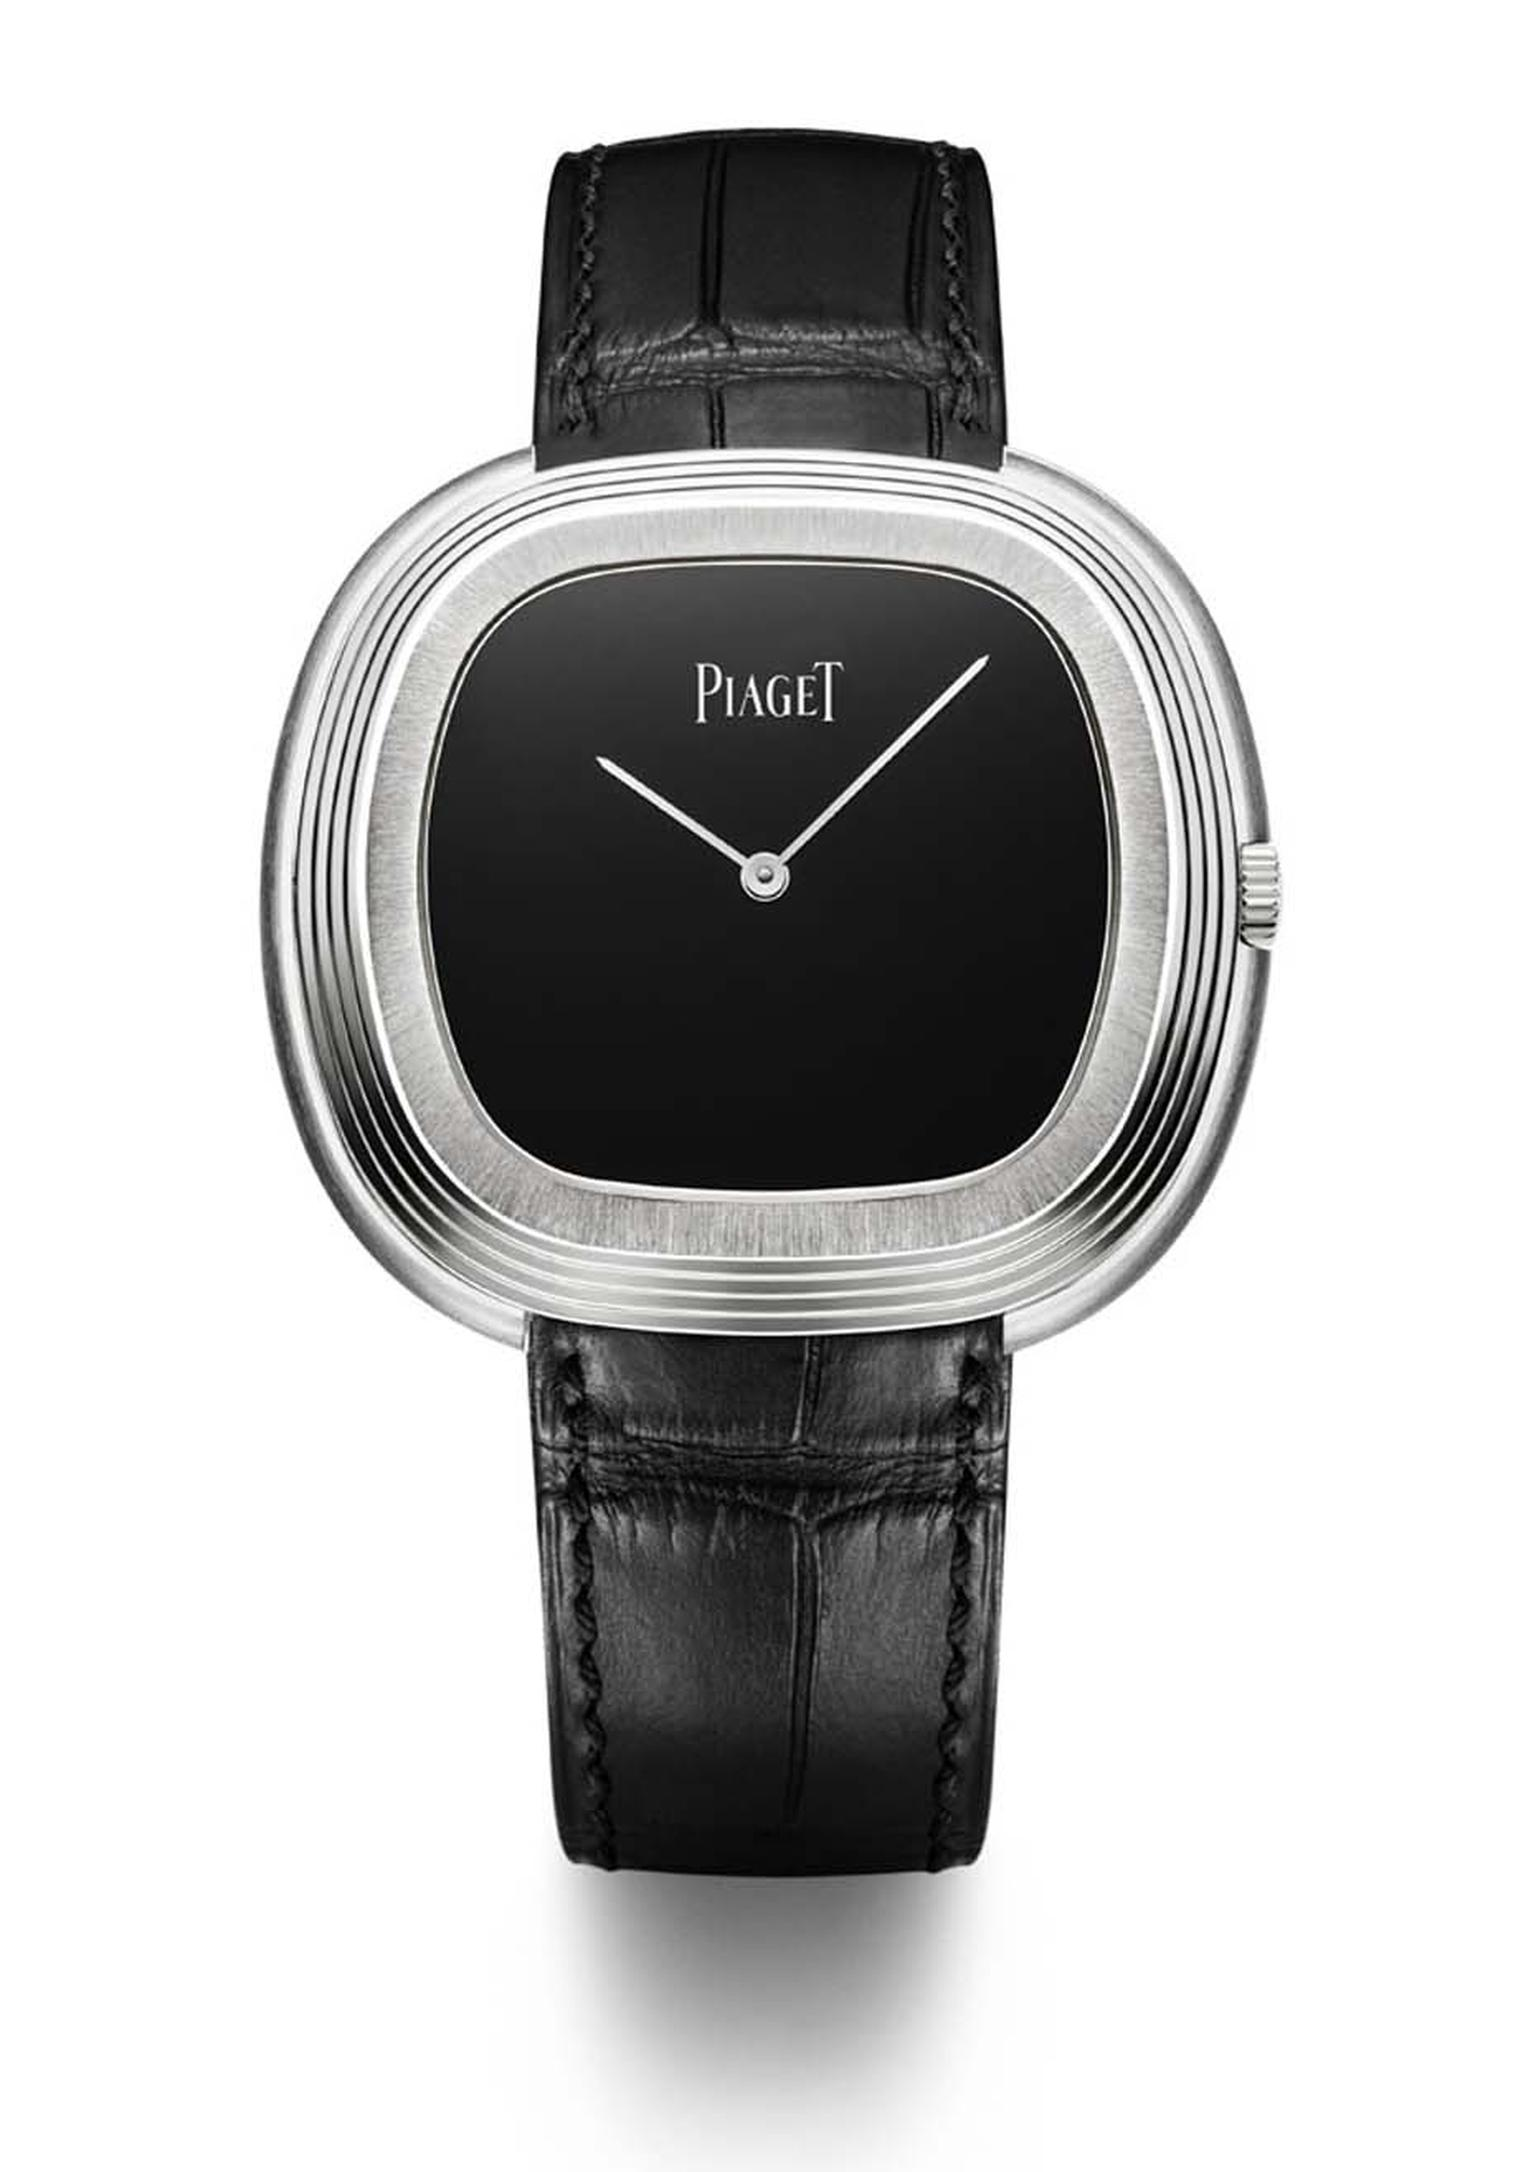 The Piaget Black Tie vintage watch has retained the bold cushion-shaped case of its predecessor, a watch that was purportedly worn and admired by Andy Warhol in the 1960s.